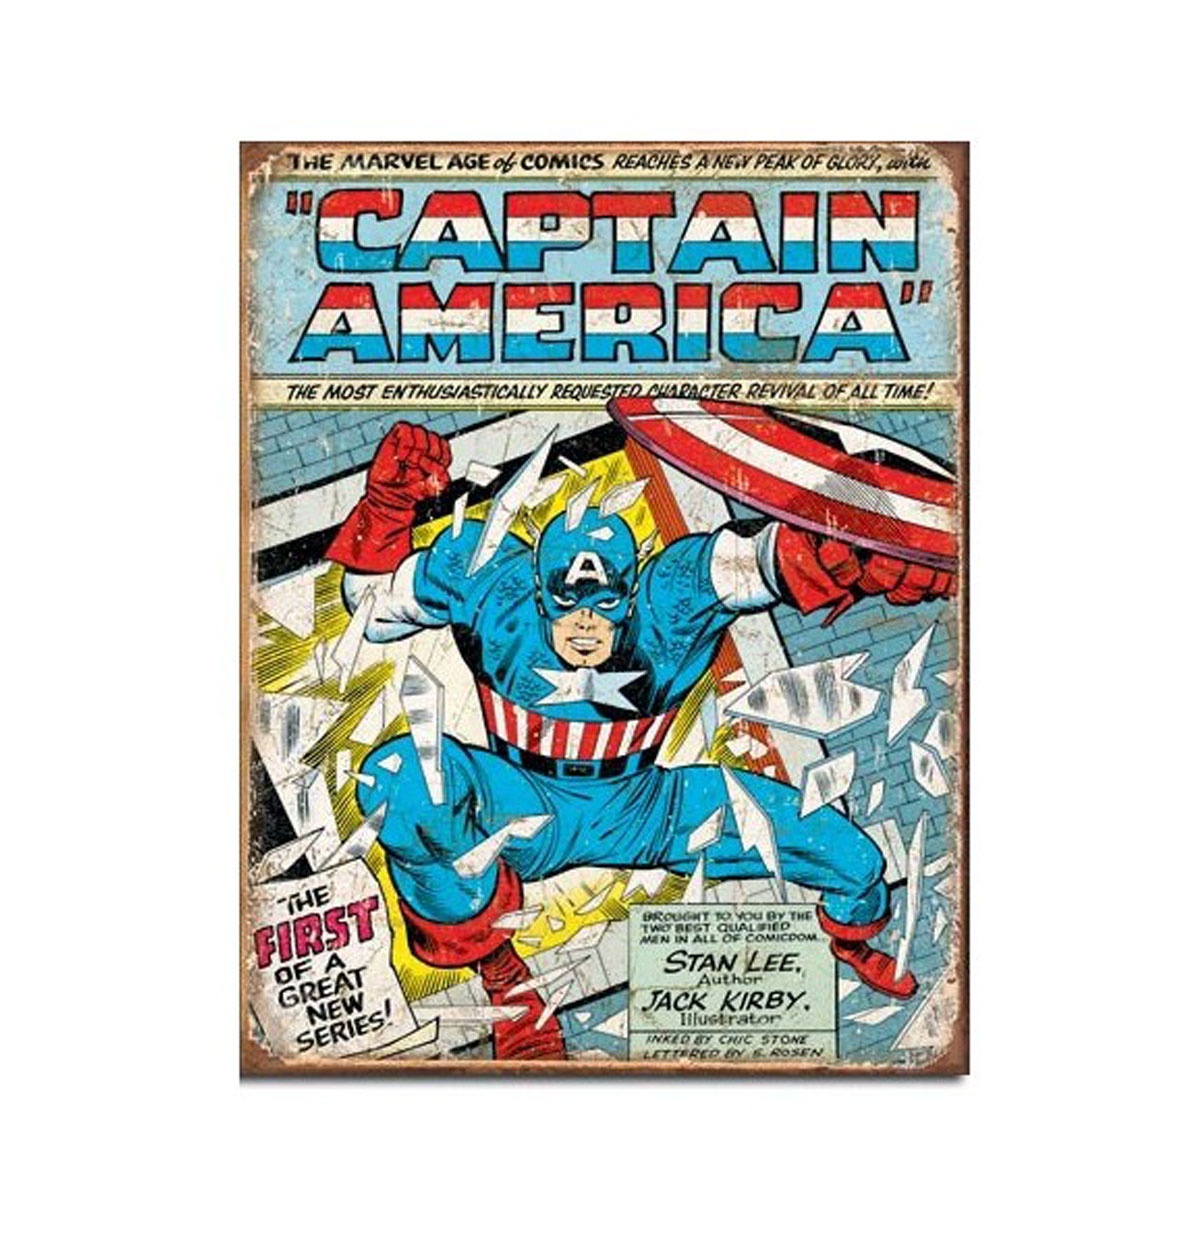 Metalen Poster - Captain America The First Of A Great New Series